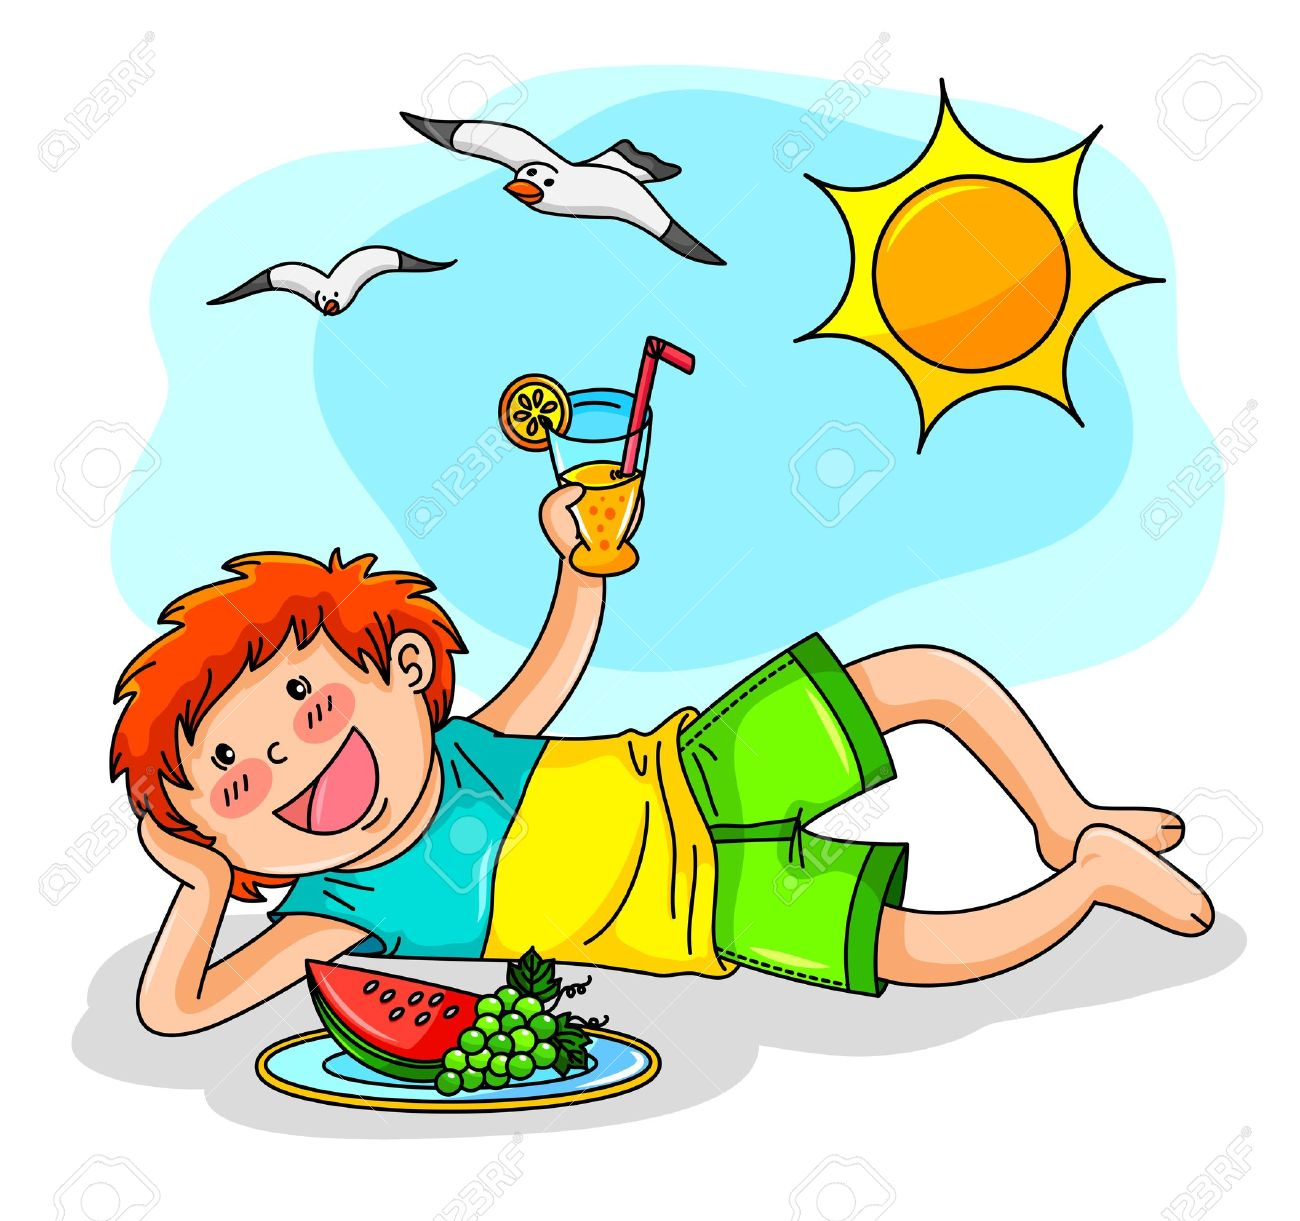 Summer season clipart » Clipart Station.